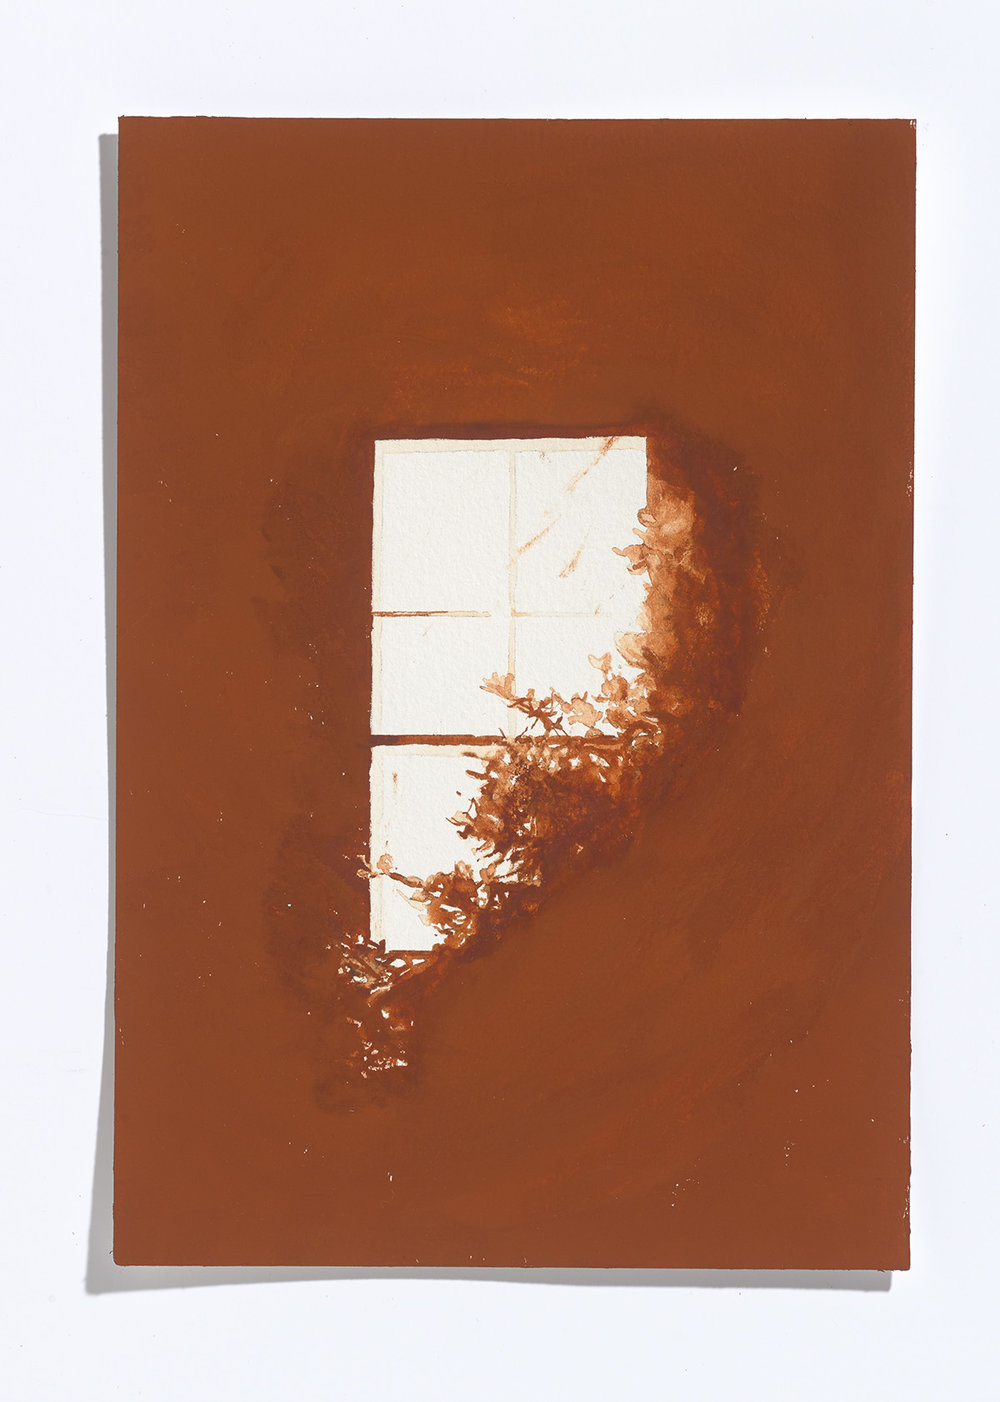 Rust window, 2017, gouache on paper, 10.25 x 7 1/8th in